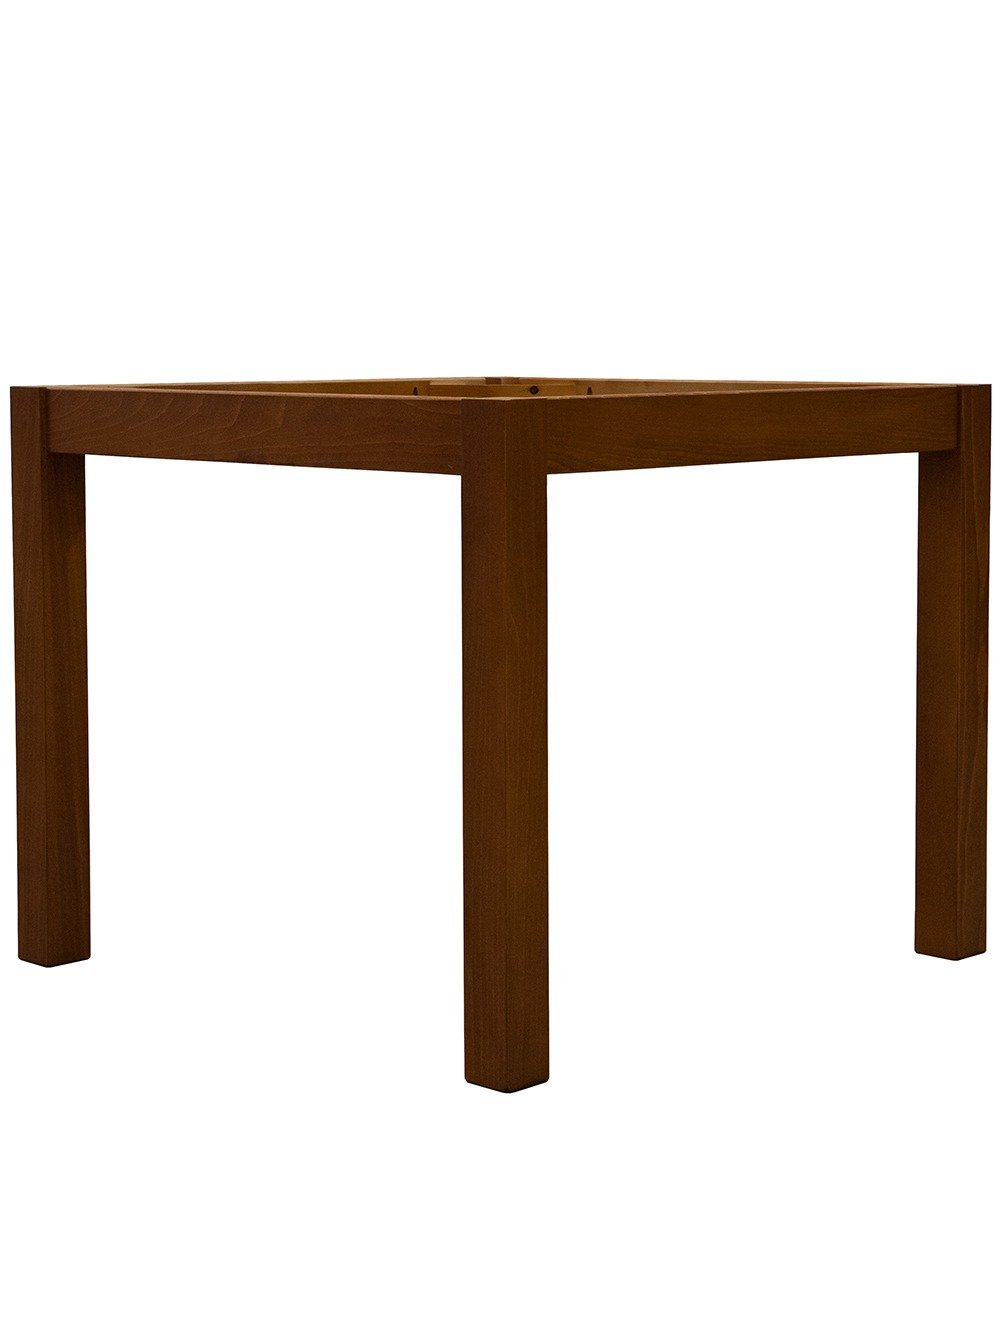 Straight 4 Leg Dining Table from a 45 degree angle